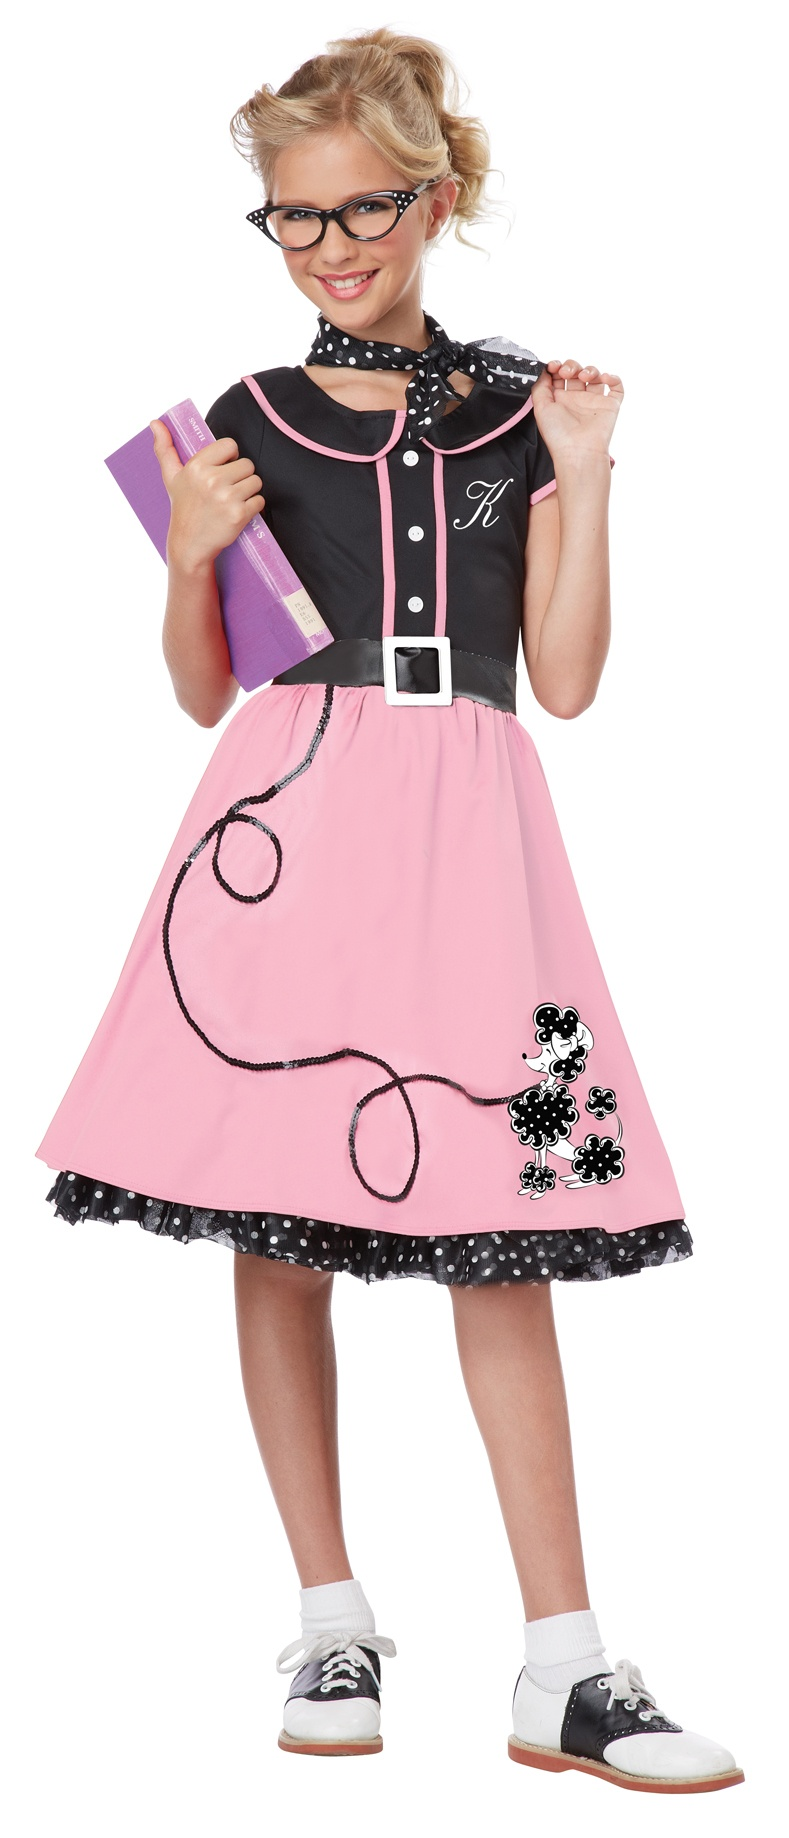 >> 50s Costumes >> Poodle Skirt Costumes >> Sock Hop Sweetheart 50s ...